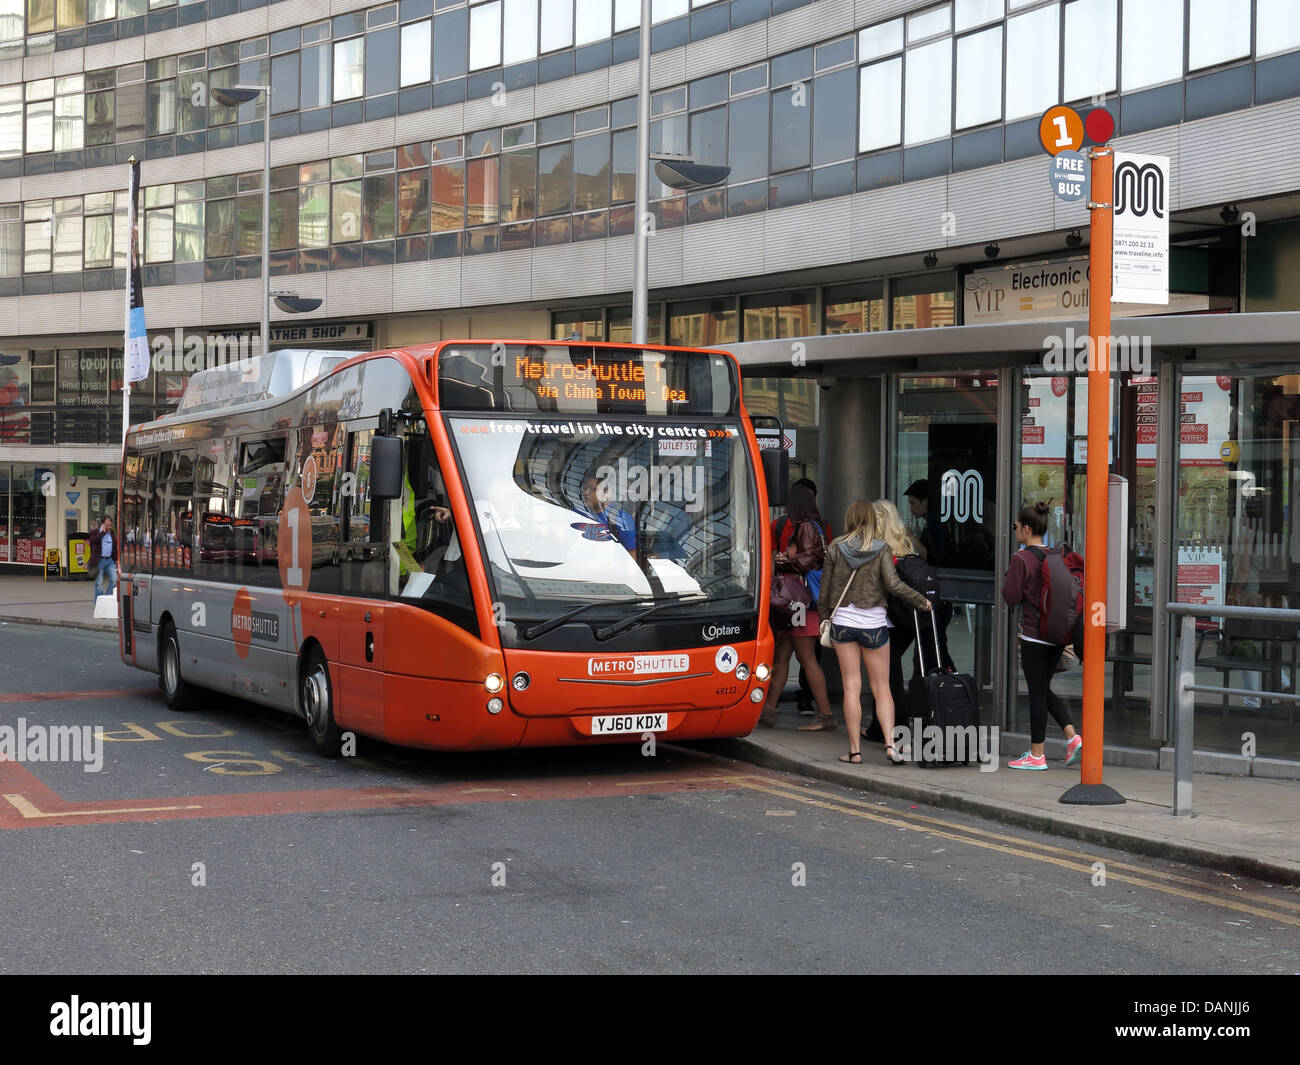 Manchester city transport free bus the MetroShuttle - Stock Image